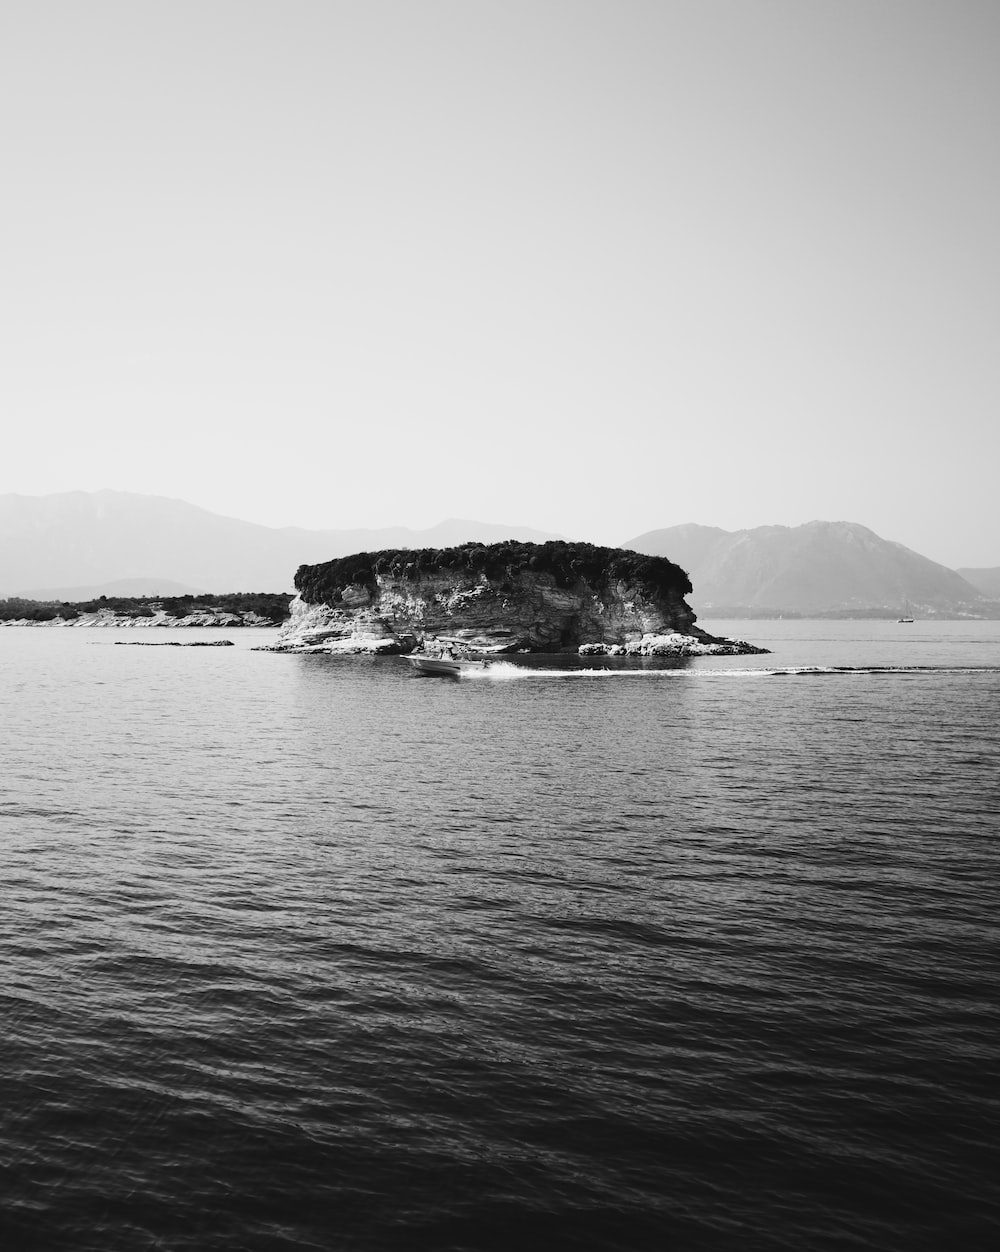 grayscale photography of boat near island during daytime